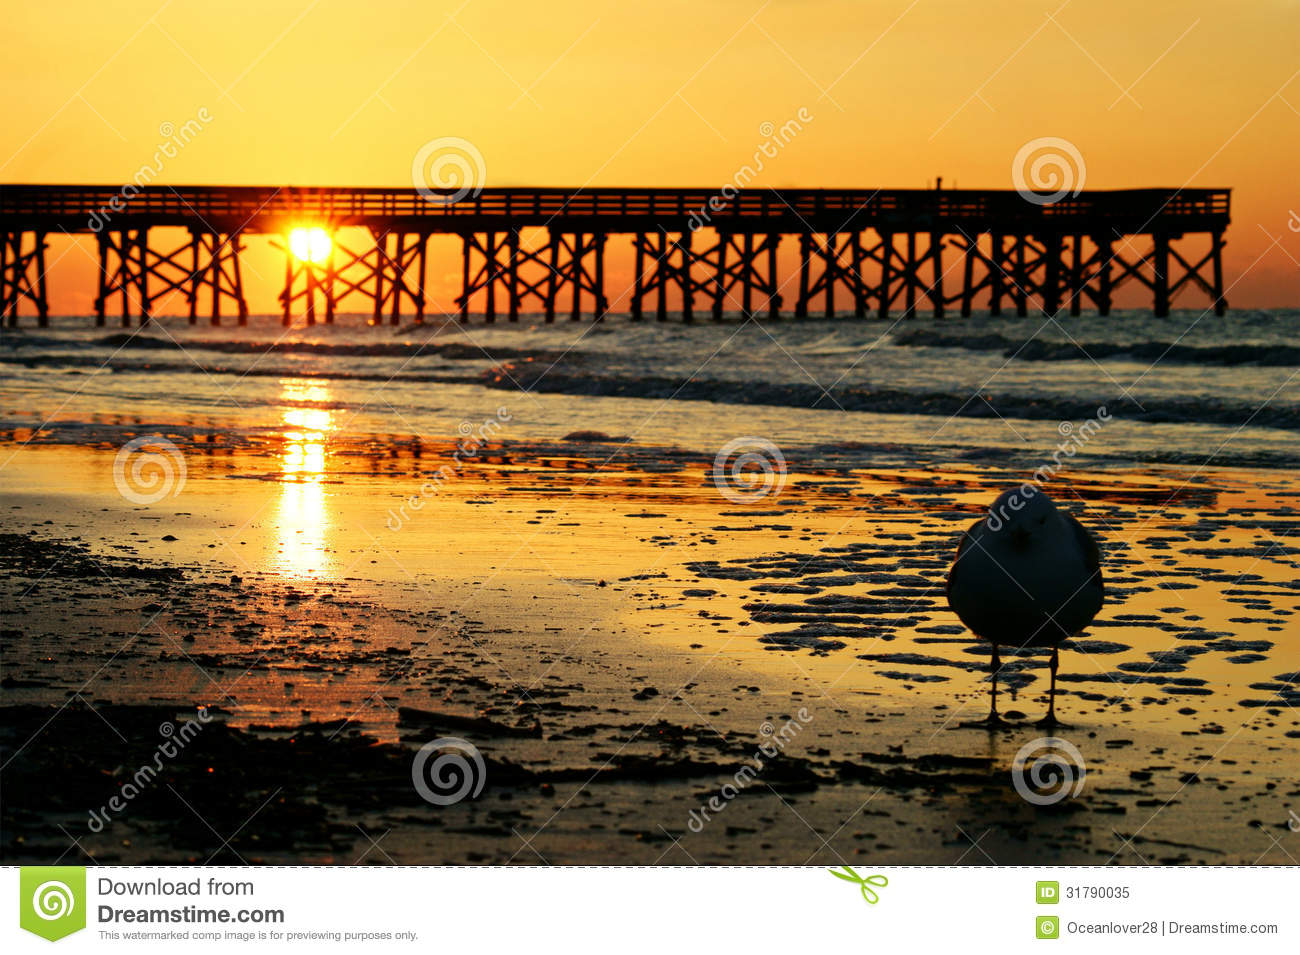 Isle of palms royalty free stock photo image 31790035 for Isle of palms fishing pier